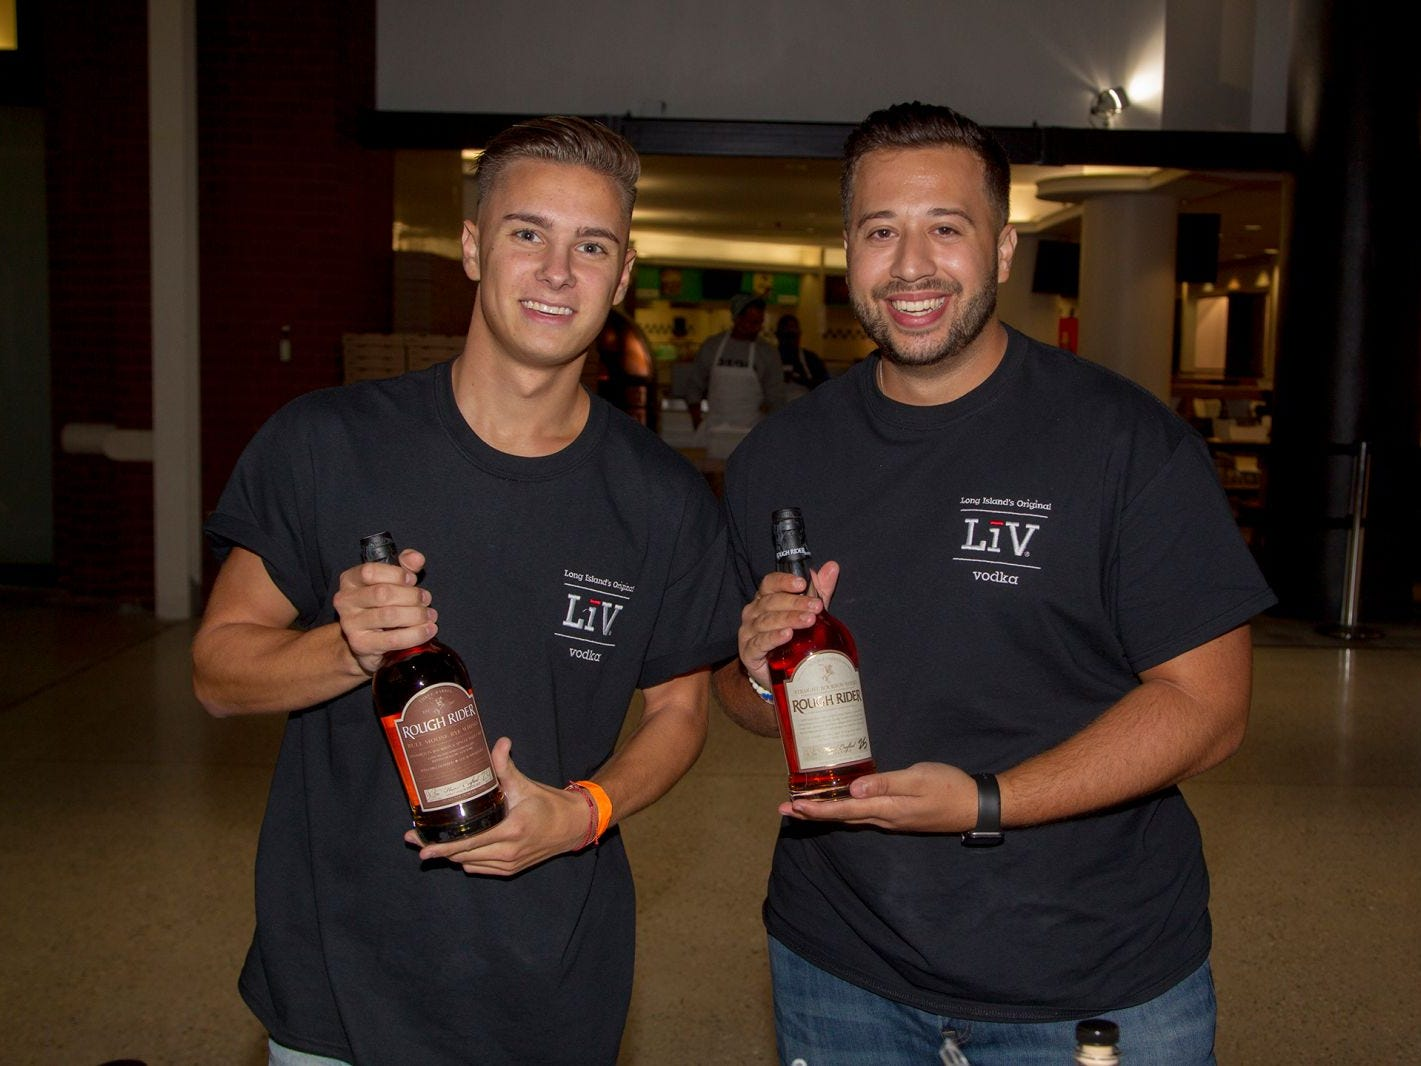 Rough Rider - Michael Tallen, Justin Carpenzano. Jersey City Craft Distillery Fest at the Harborside Atrium featured more than 100 styles of spirits. Guests had the chance to taste craft-distilled spirits from moonshine, rum, cognac, whiskey, vodka, gin, tequila and more. 09/08/2018